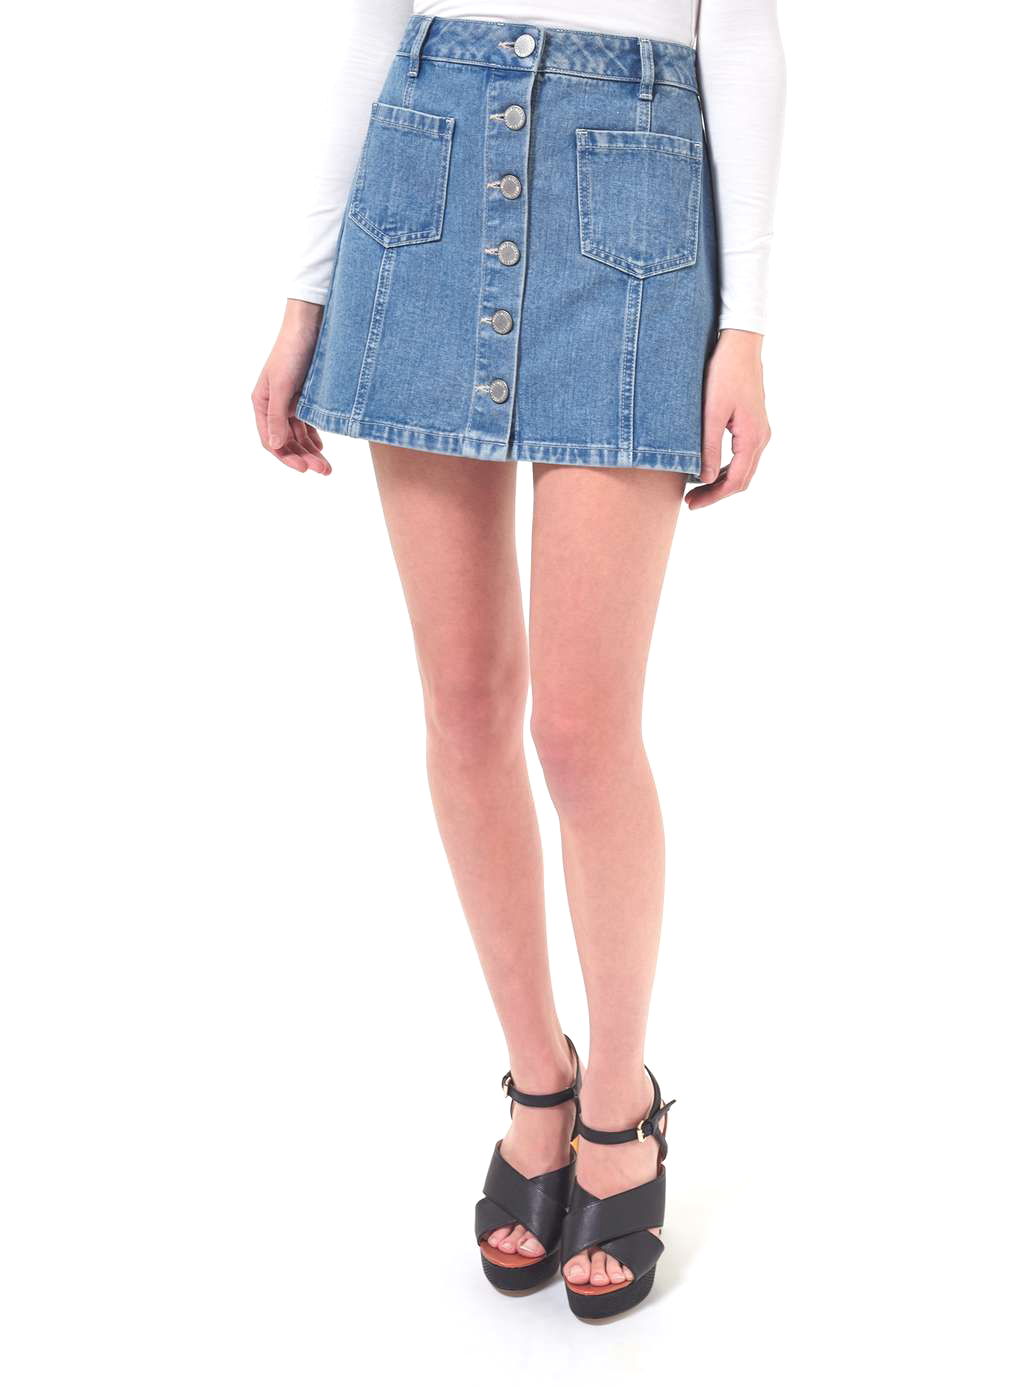 Spring miss selfridge denim skirt